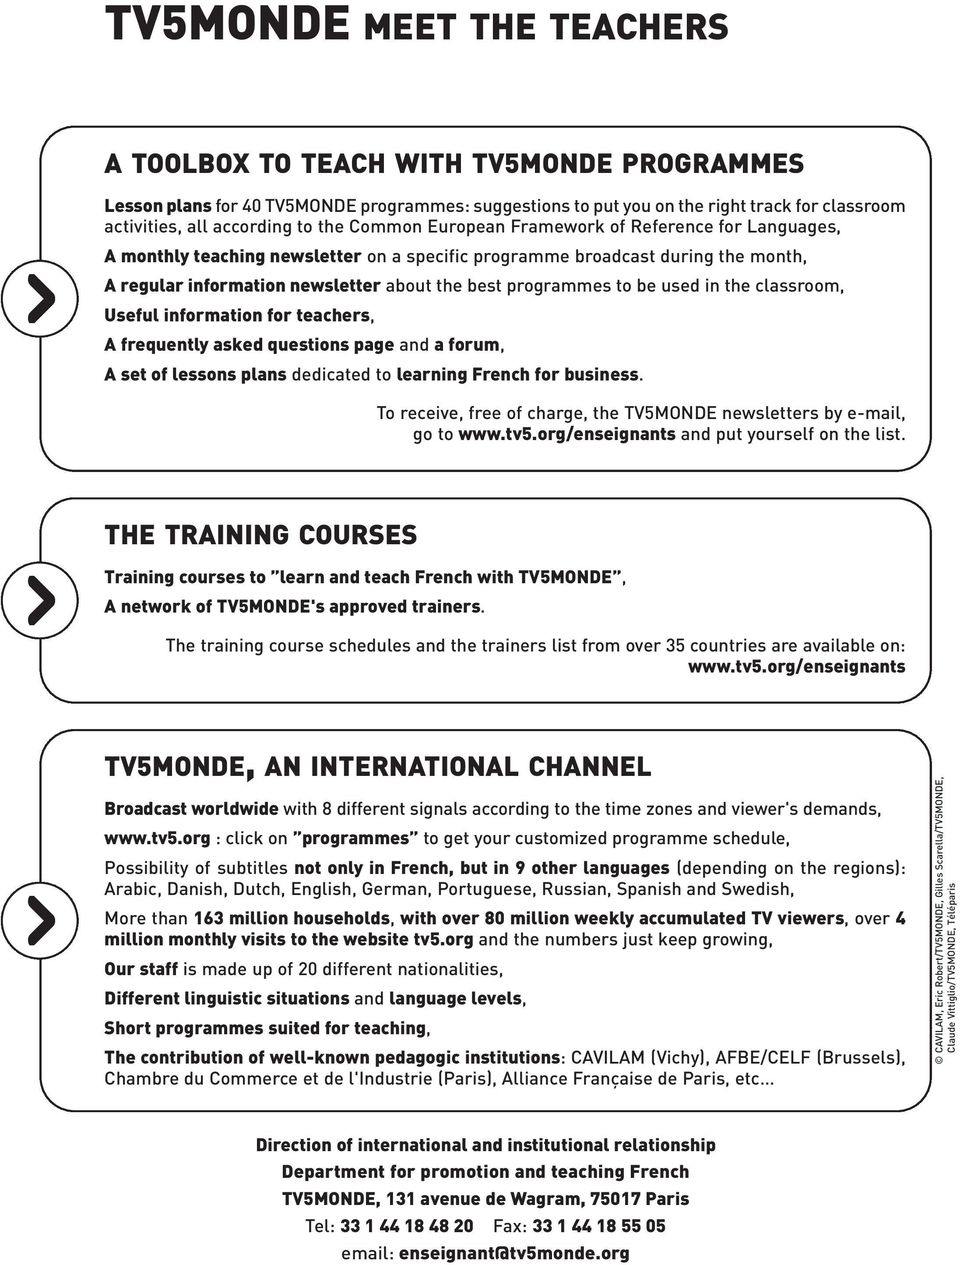 to be used in the classroom, Useful information for teachers, A frequently asked questions page and a forum, A set of lessons plans dedicated to learning French for business.